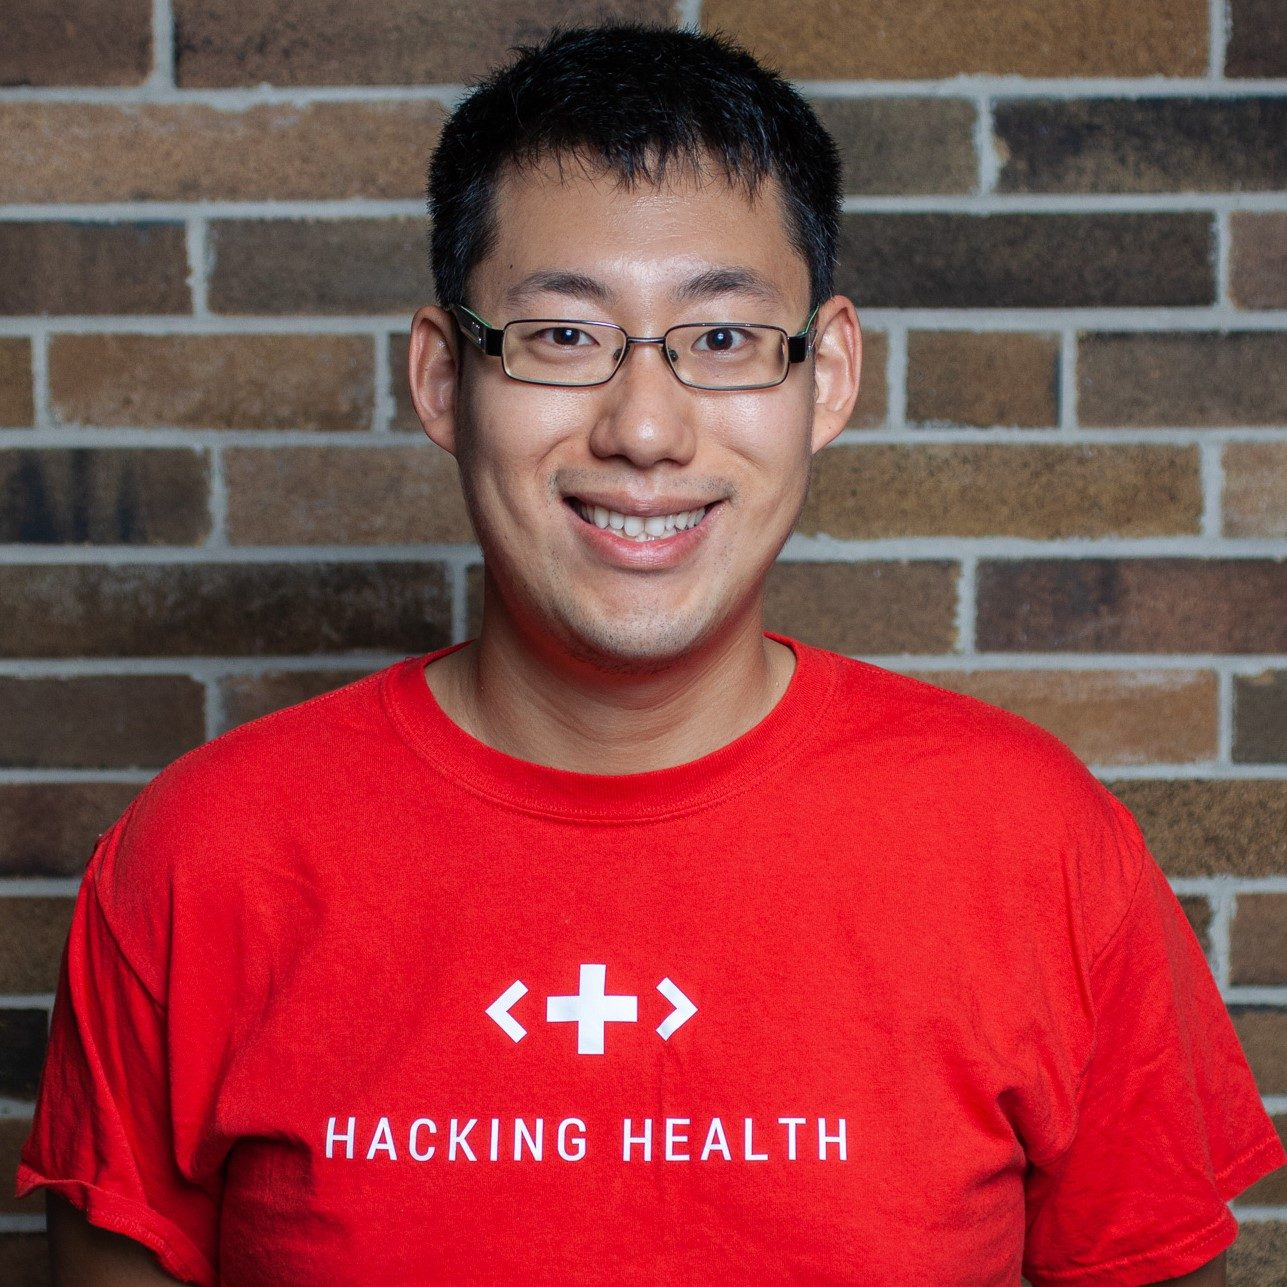 Hacking Health Toronto - Seqian Wang